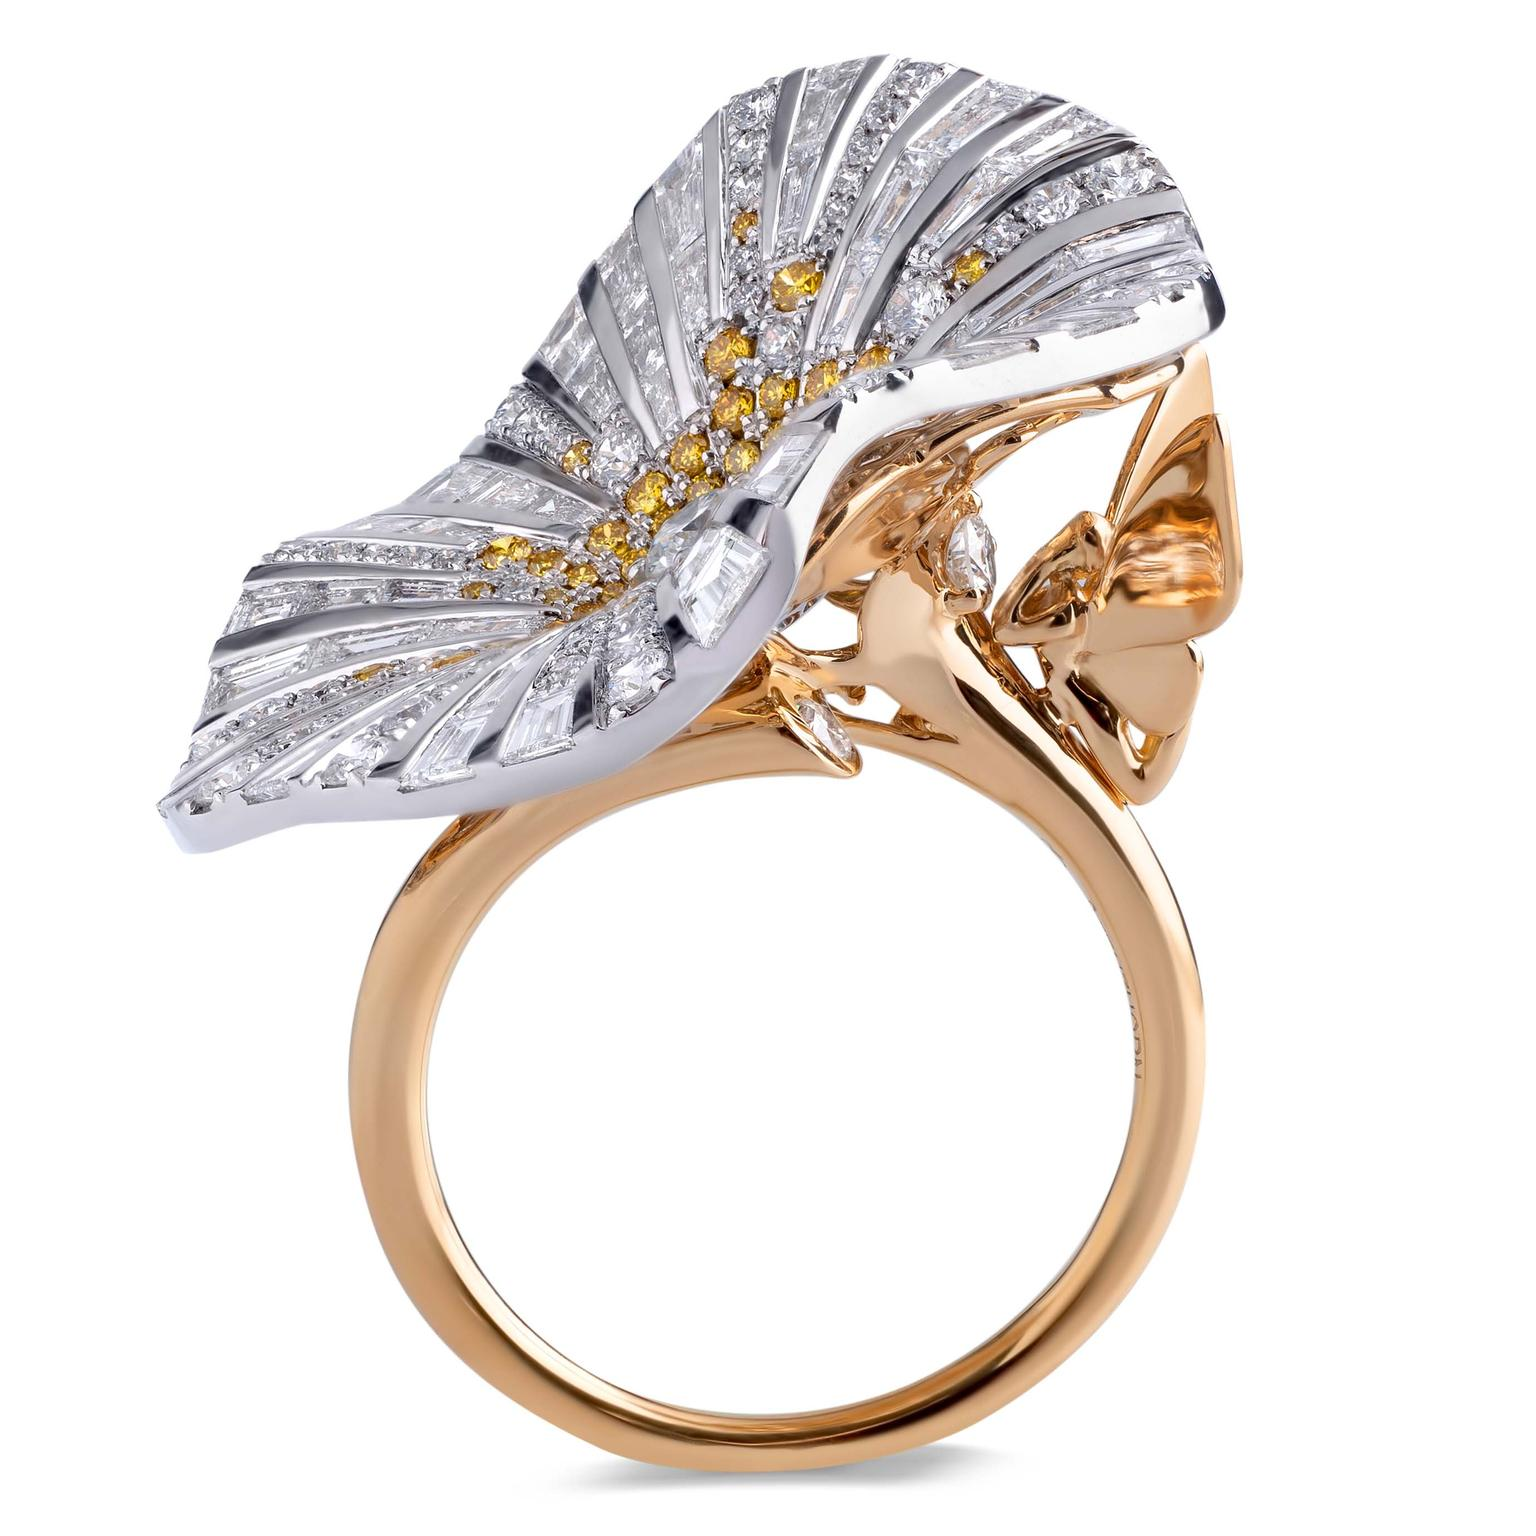 Stenzhorn Belle yellow diamond and white diamond ring